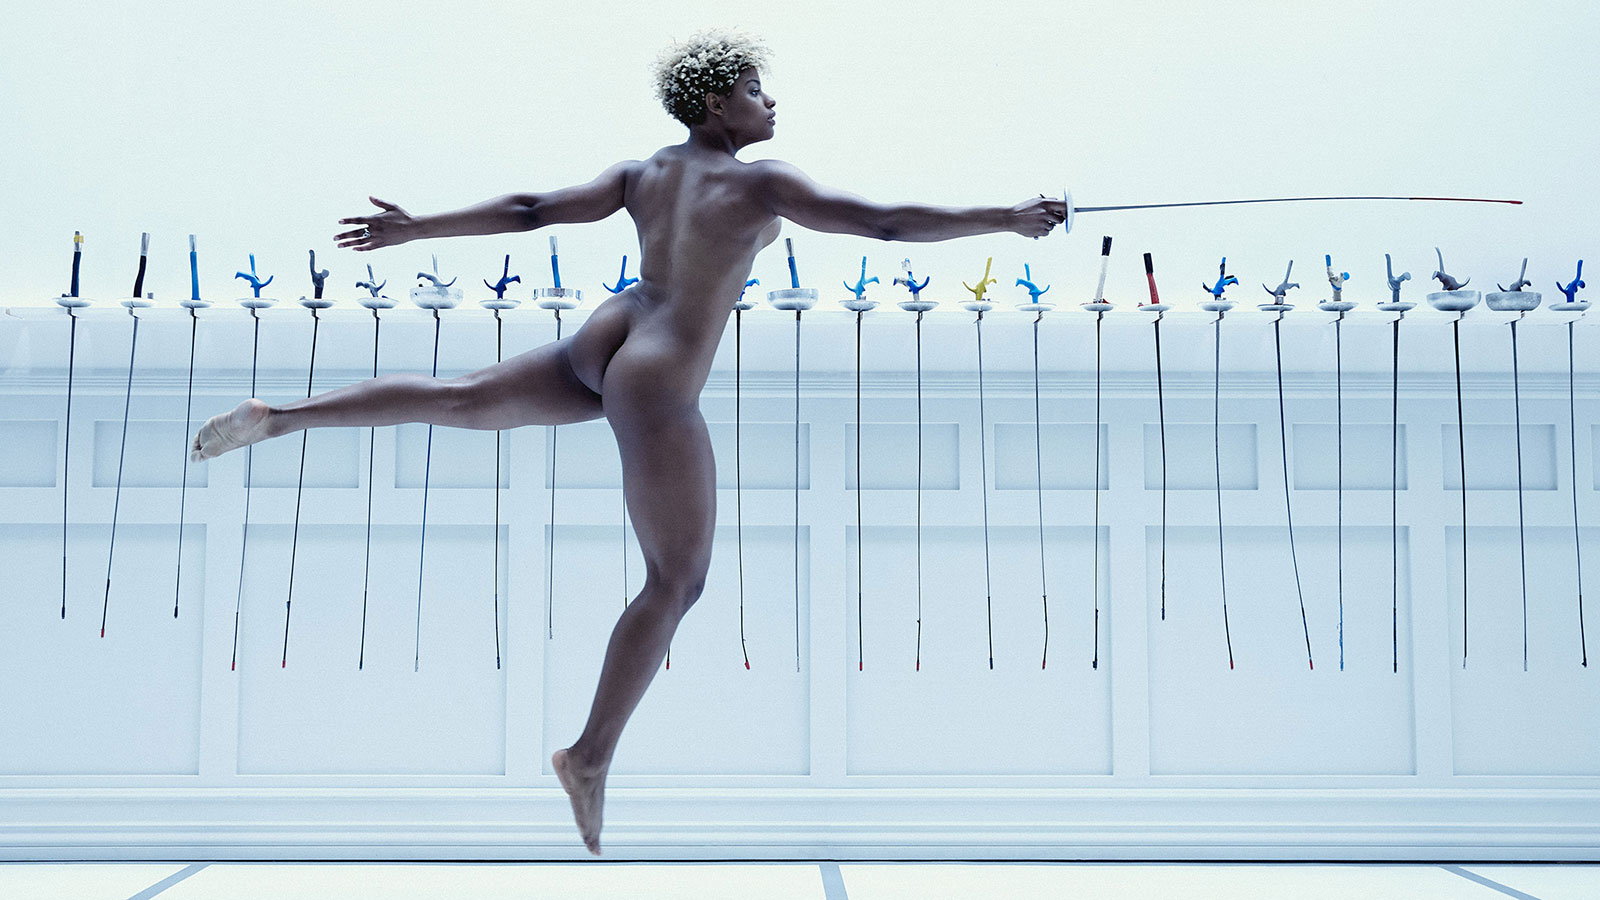 Nzinga Prescod, Fencing, featured in the Body Issue 2016: Fully Exposed on ESPN the Magazine